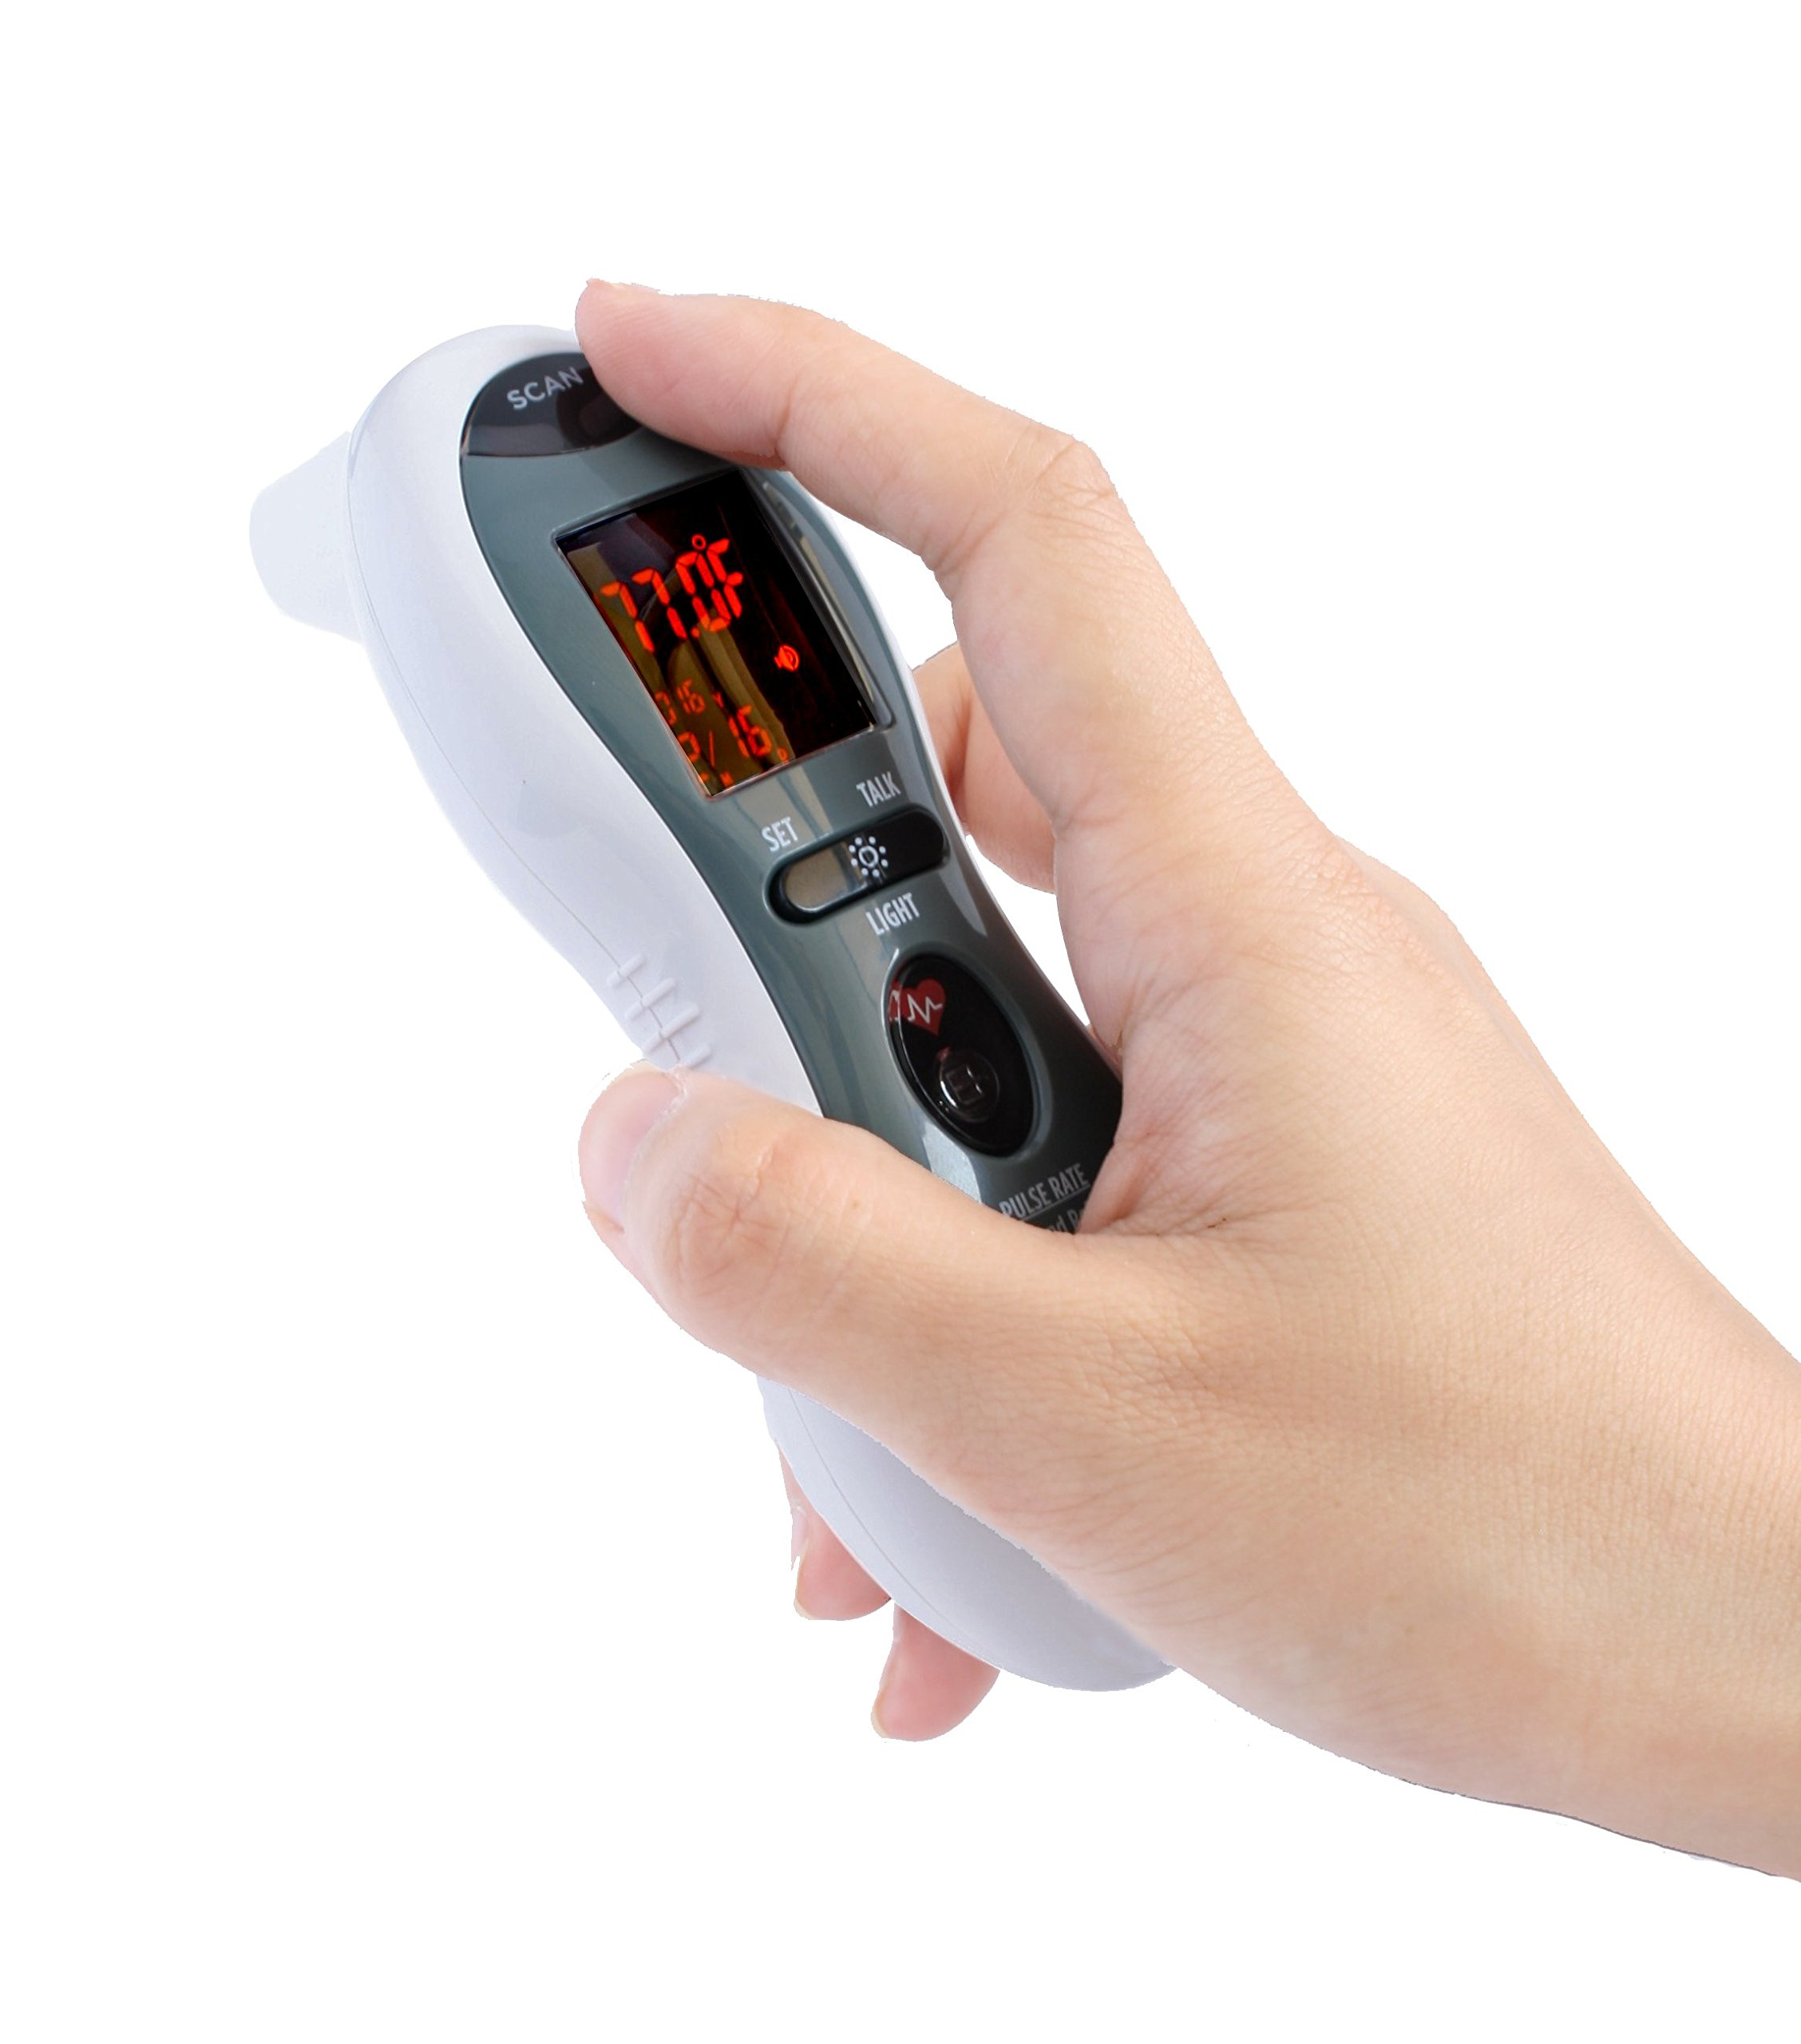 Mobi Ultra Pulse Ear and Forehead Talking Digital Thermometer with Pulse Rate Monitor